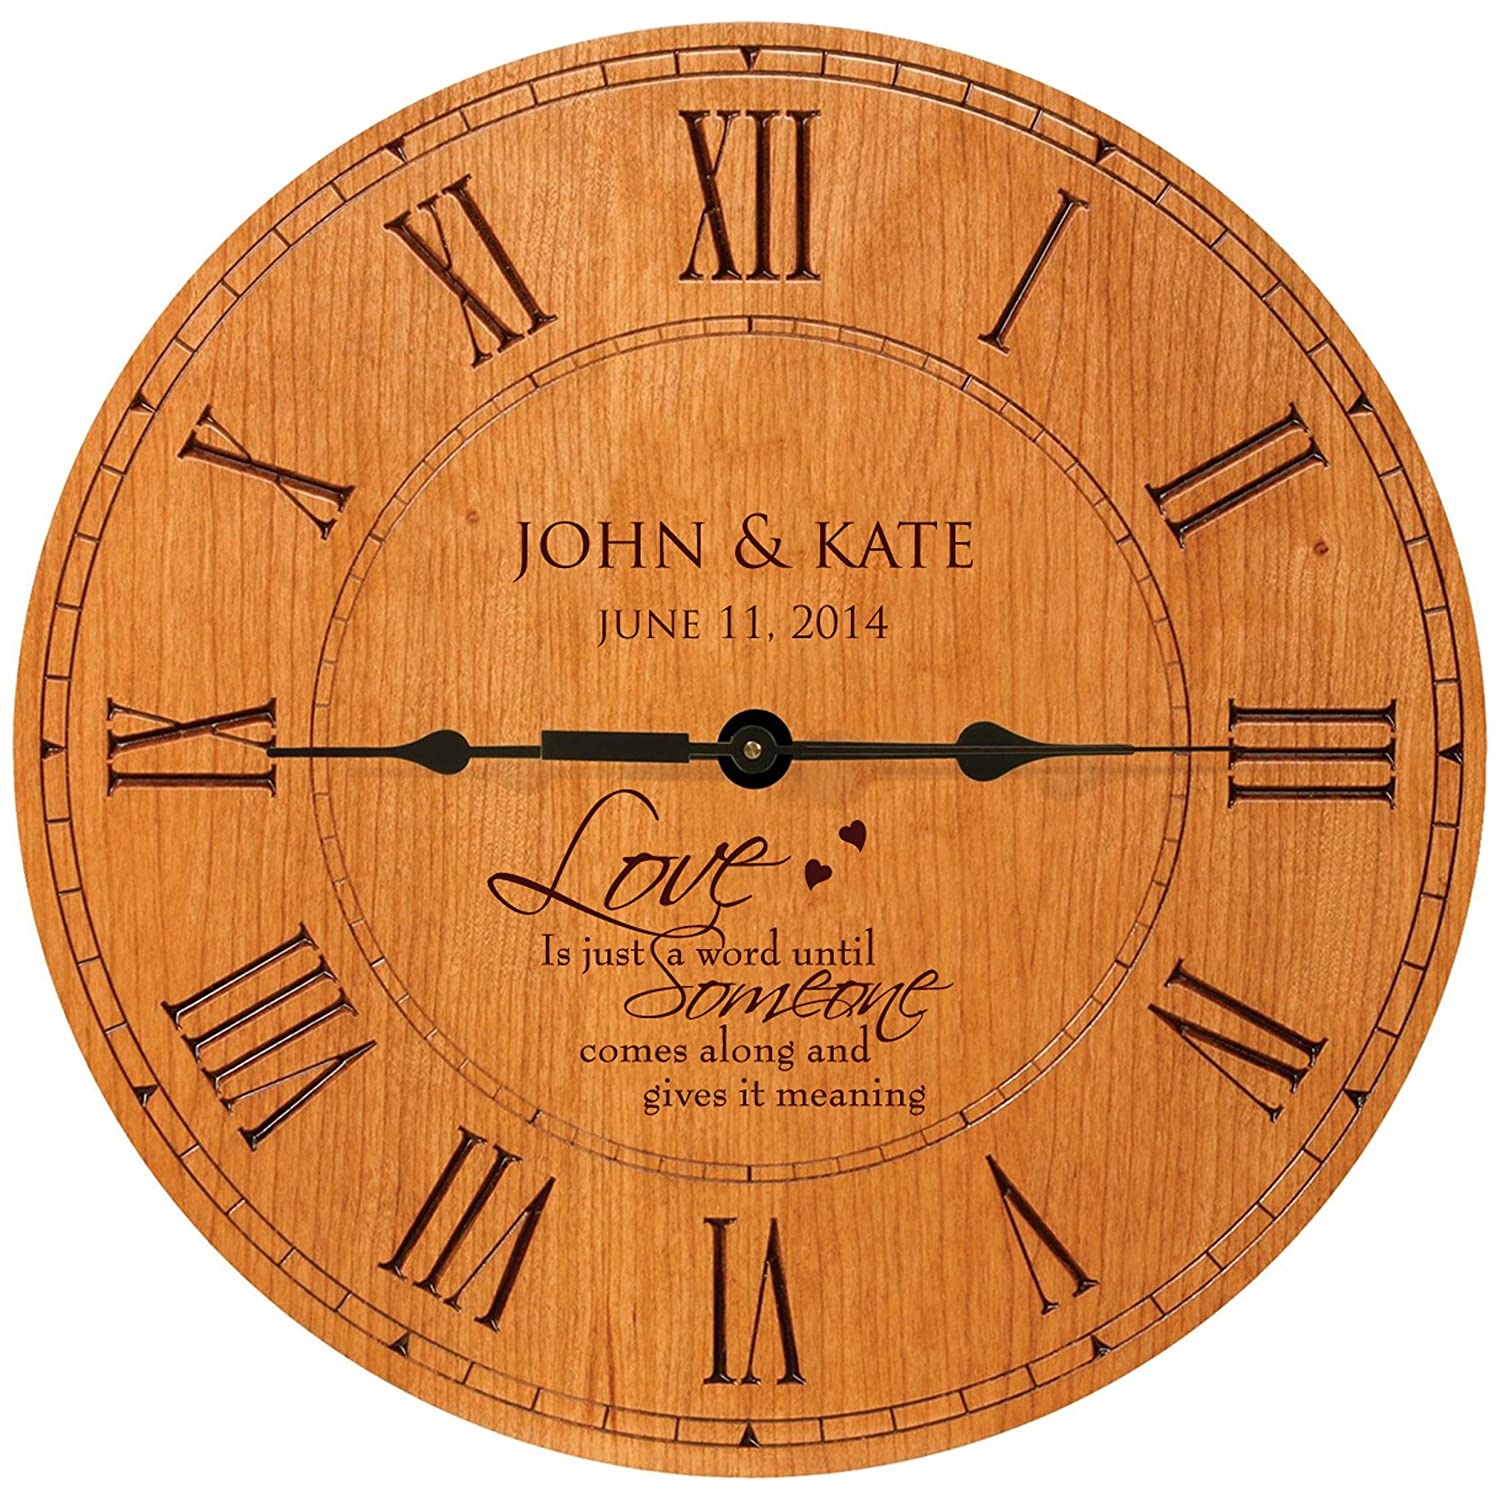 Amazon personalized wedding gifts modern decorative wall amazon personalized wedding gifts modern decorative wall clocks housewarming anniversary gifts for couple 12x12 by dayspring milestones cherry amipublicfo Images